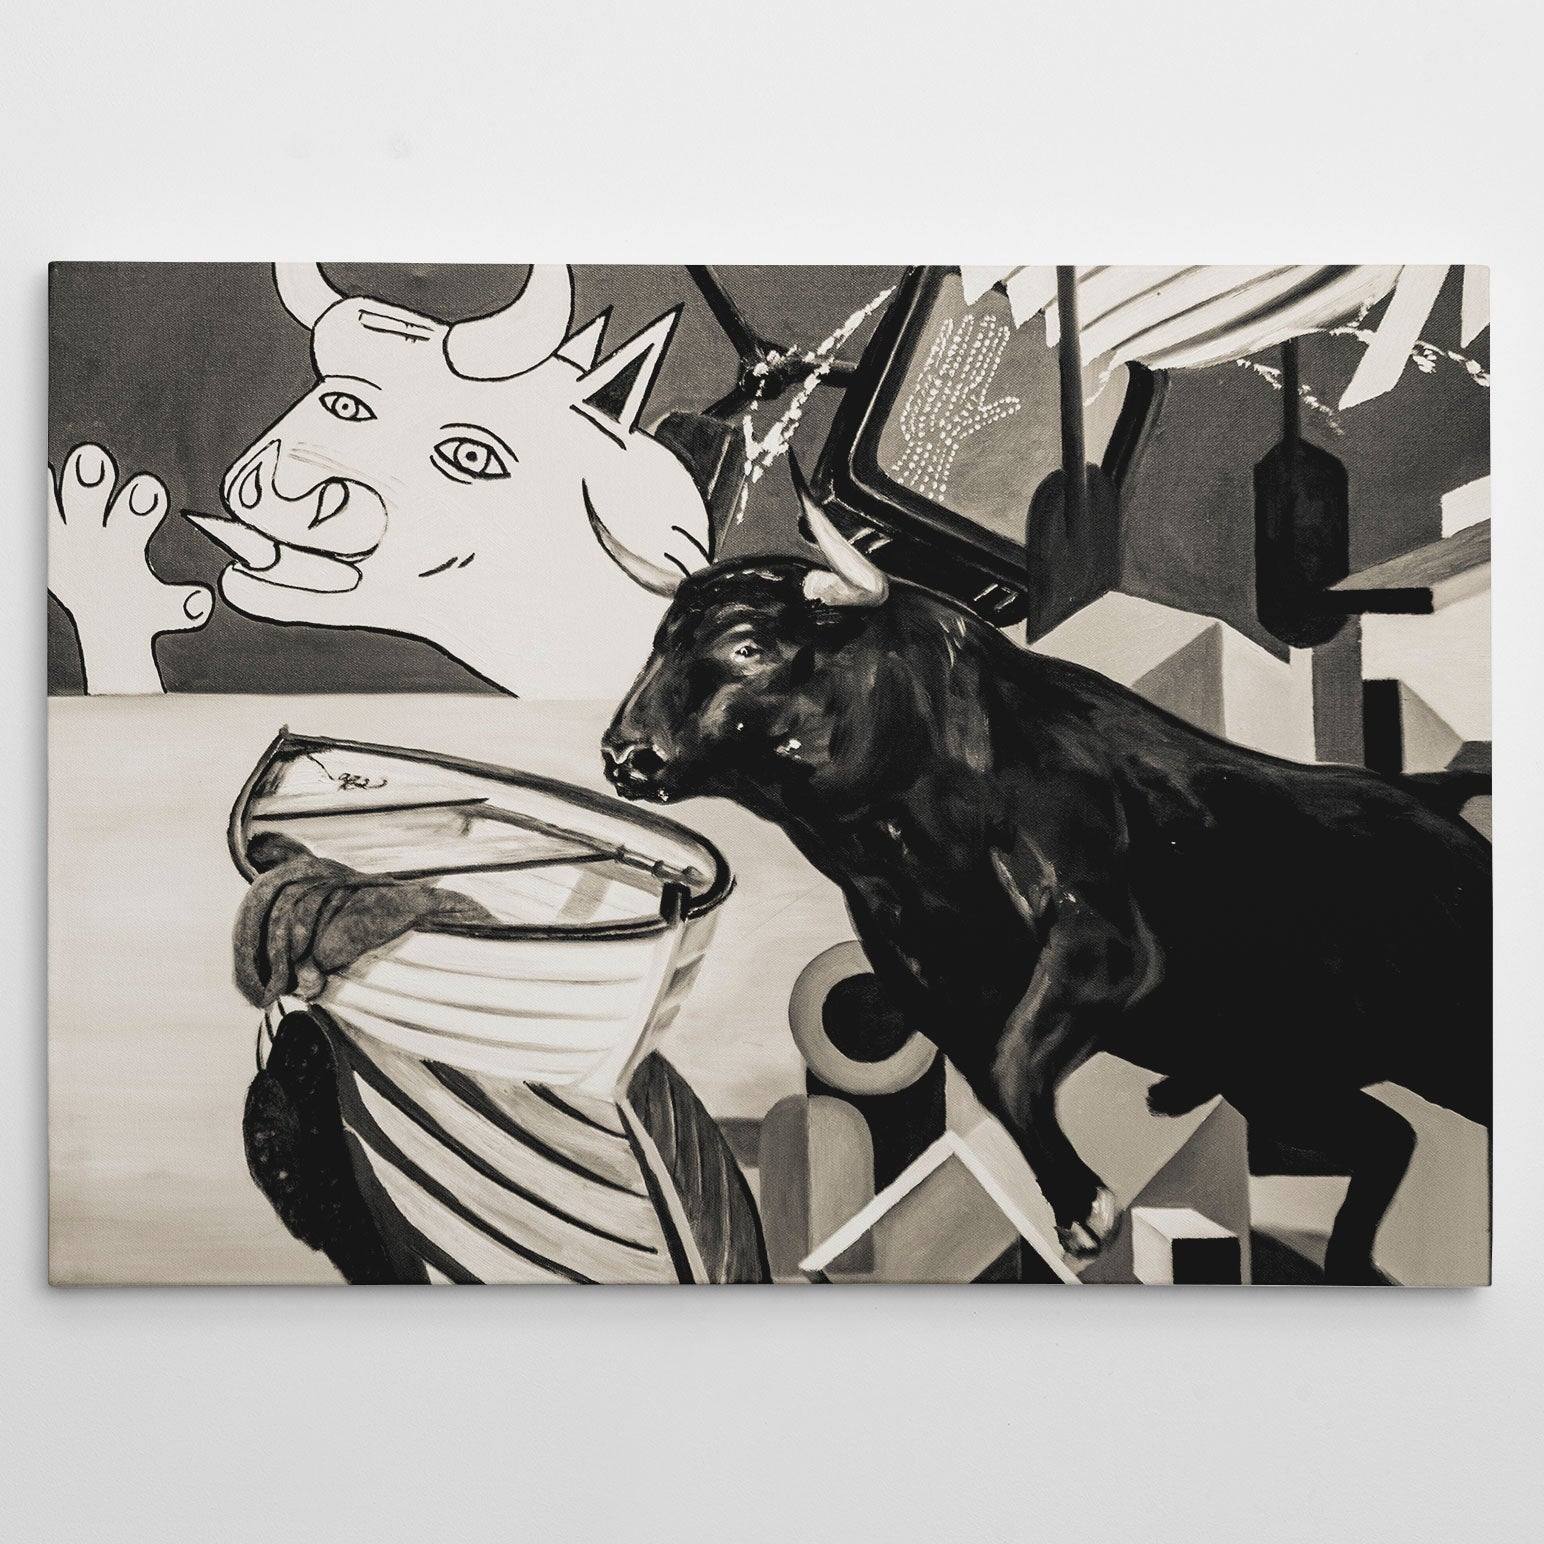 Street art style canvas print of a black and white bulls painting, with arts mixture.